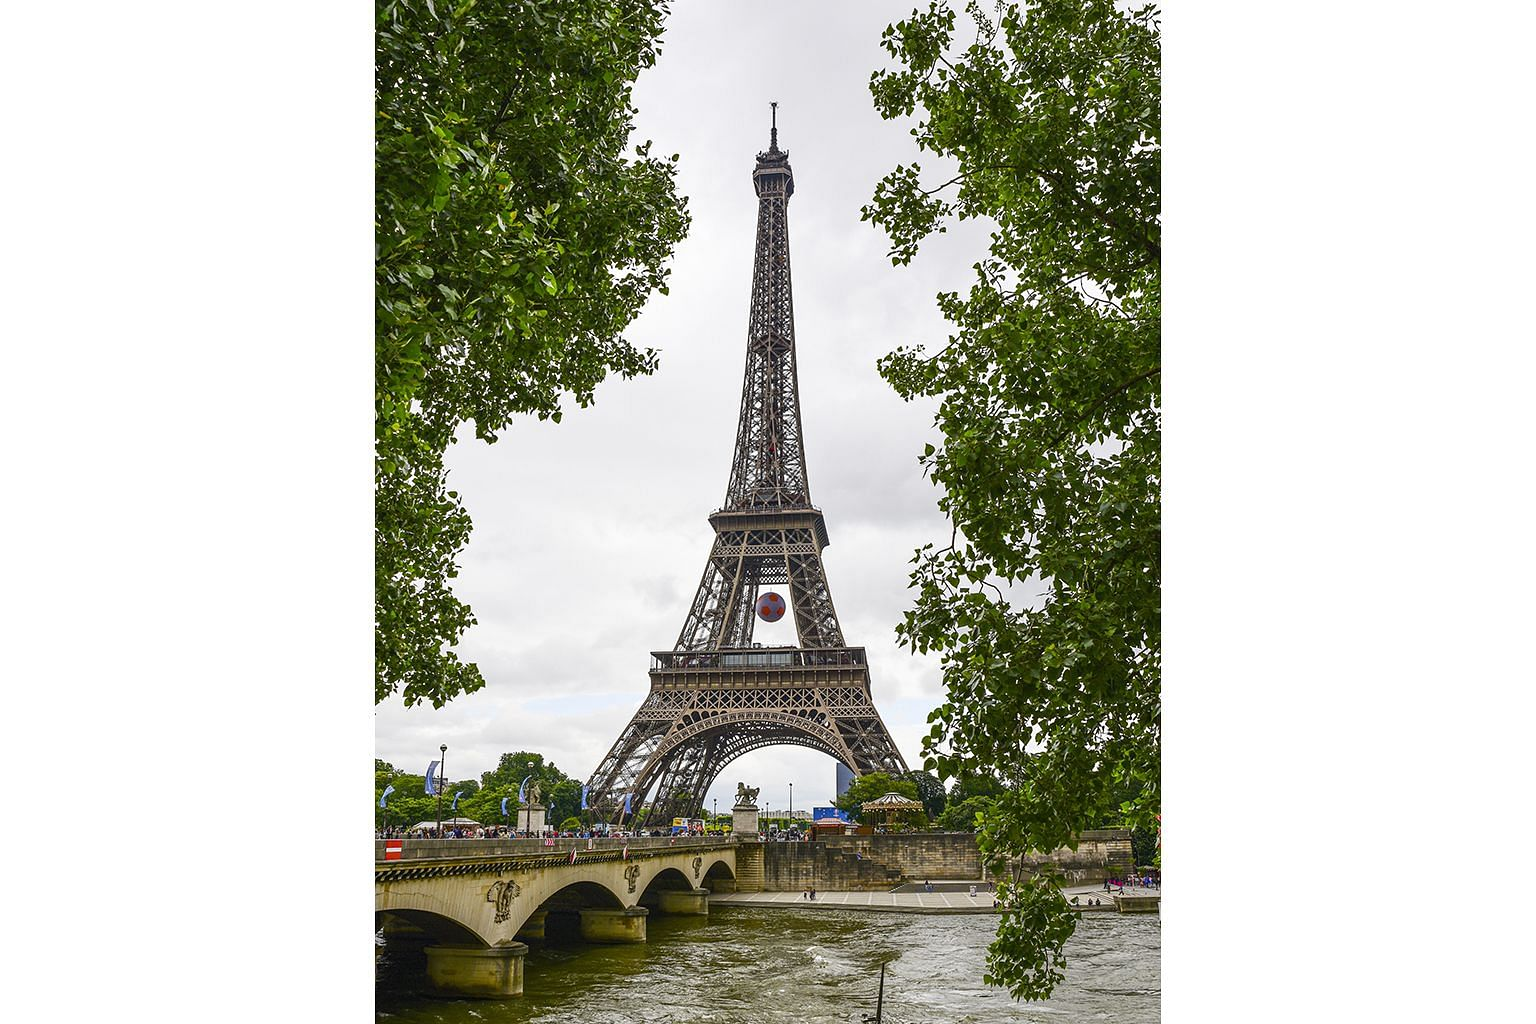 Travel hot spos: The Eiffel Tower in Paris.